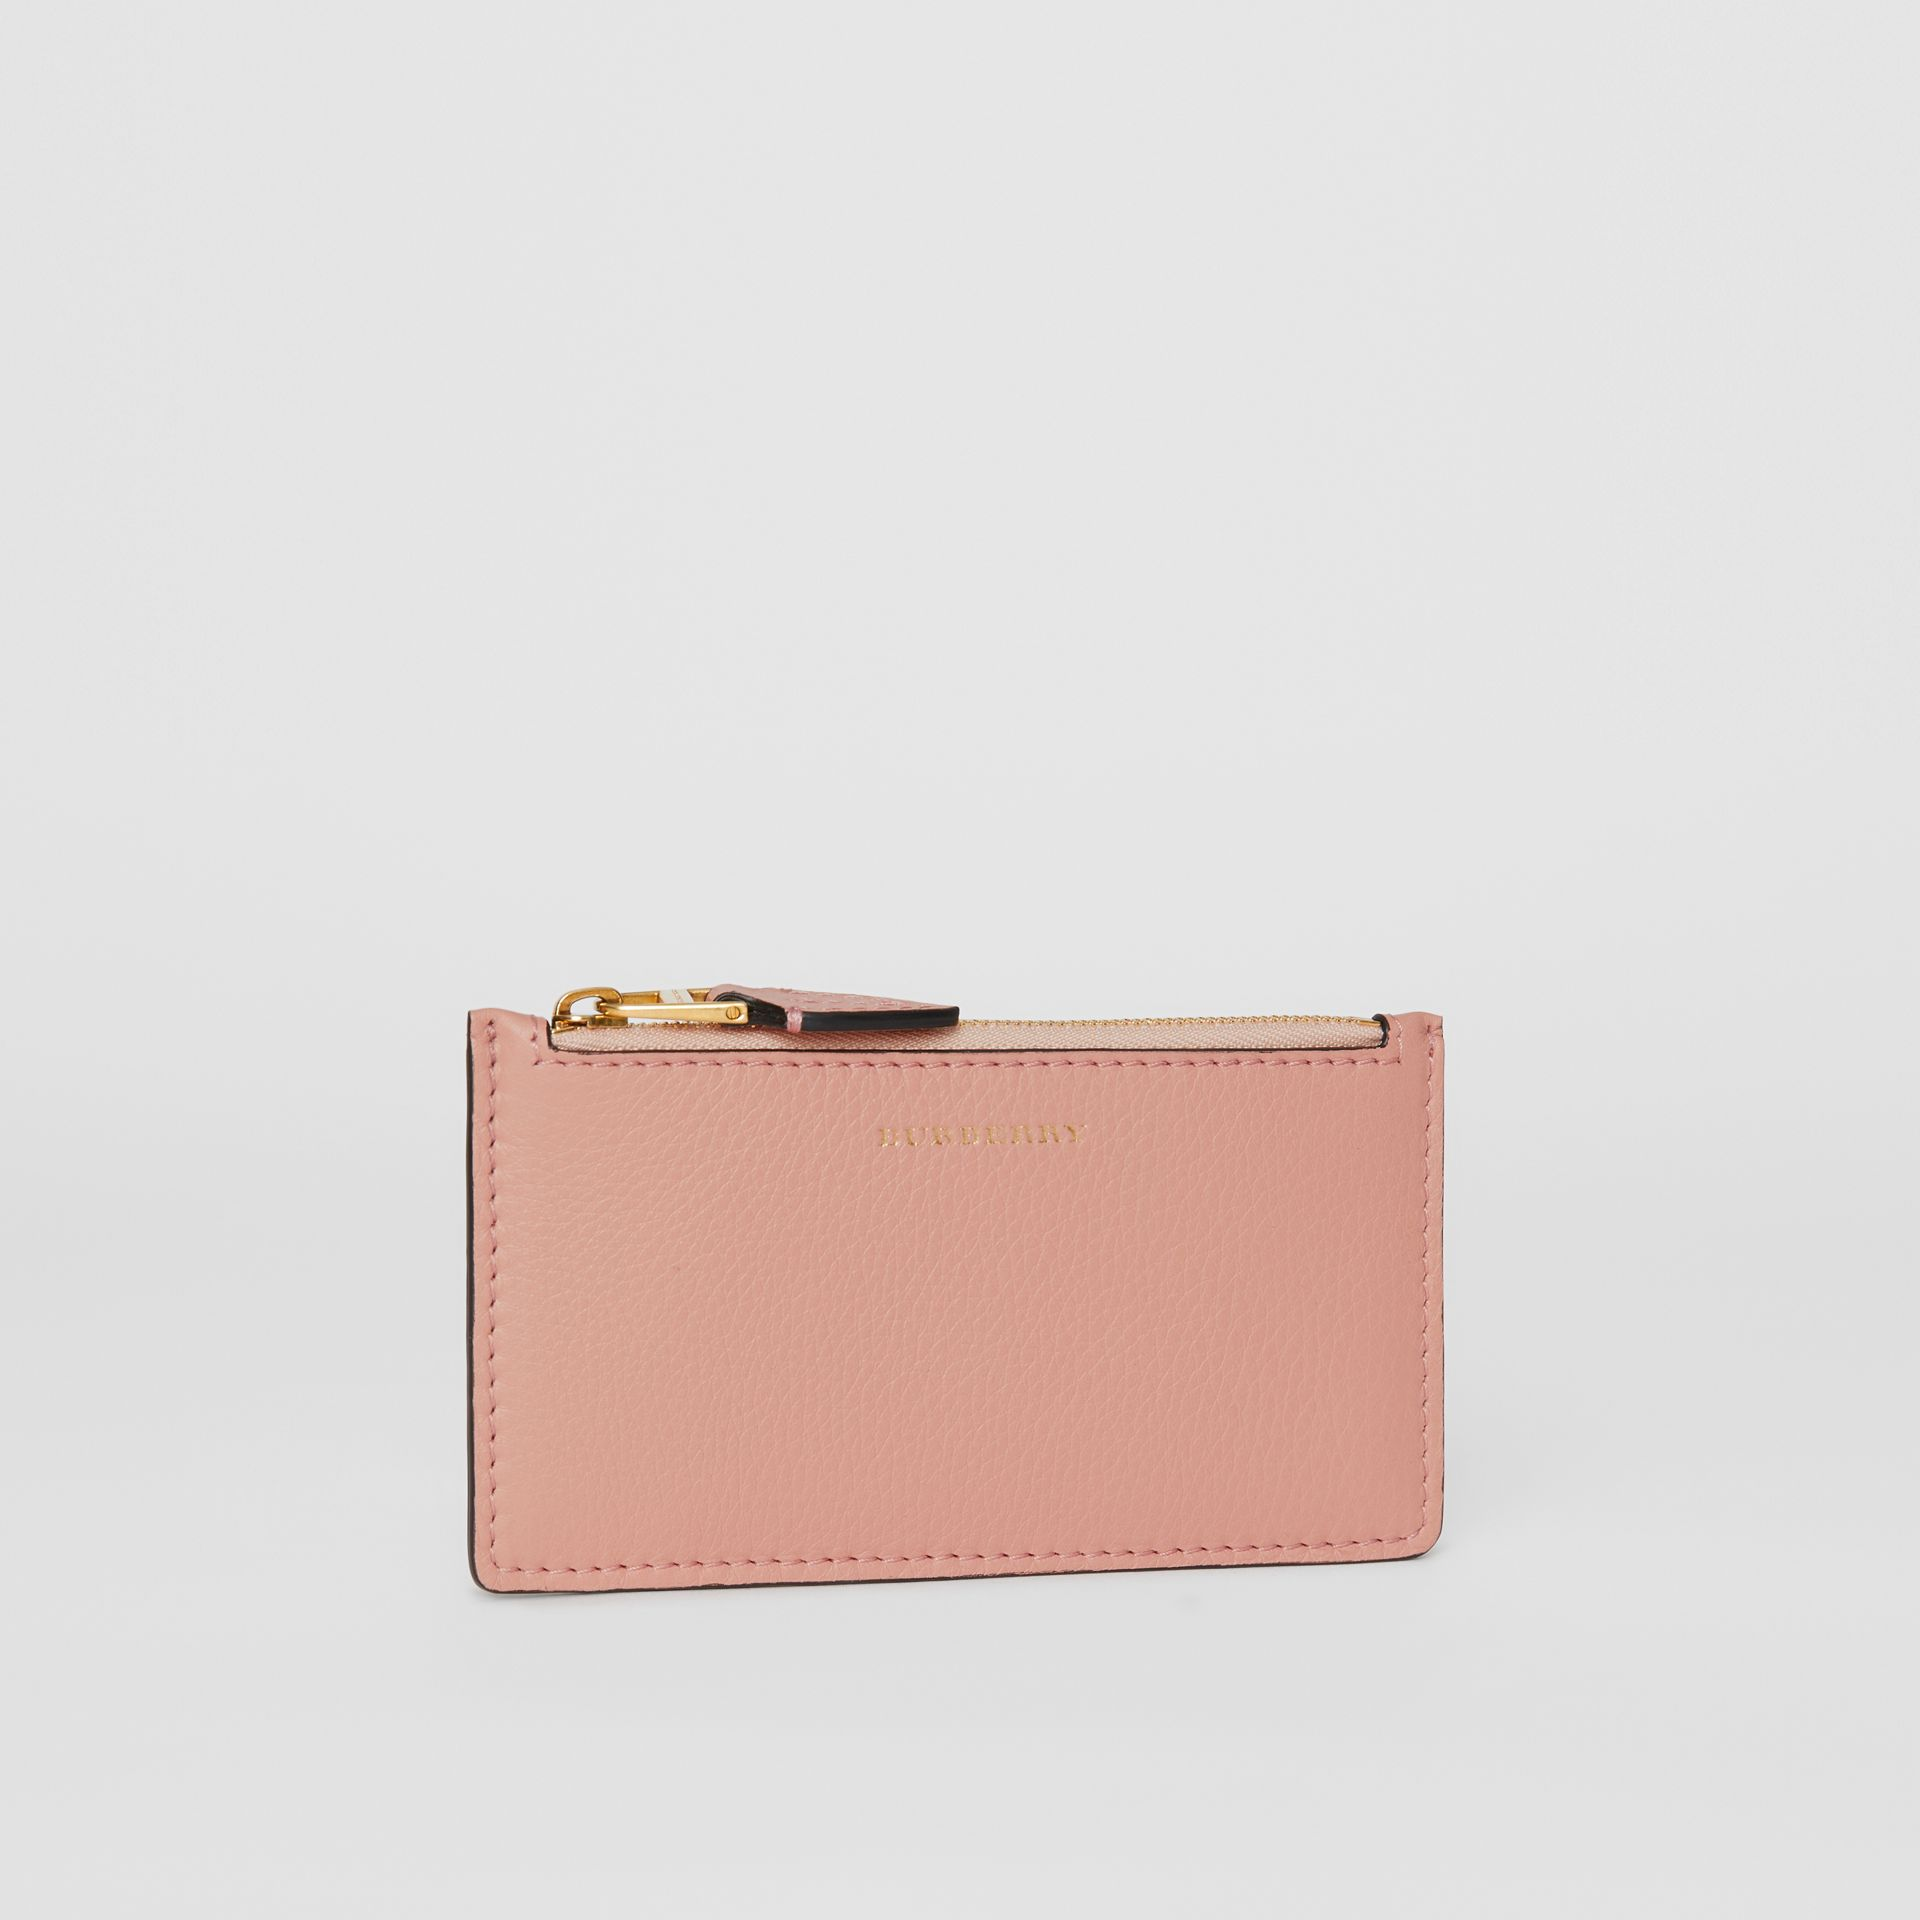 Two-tone Leather Zip Card Case in Ash Rose - Women | Burberry - gallery image 3